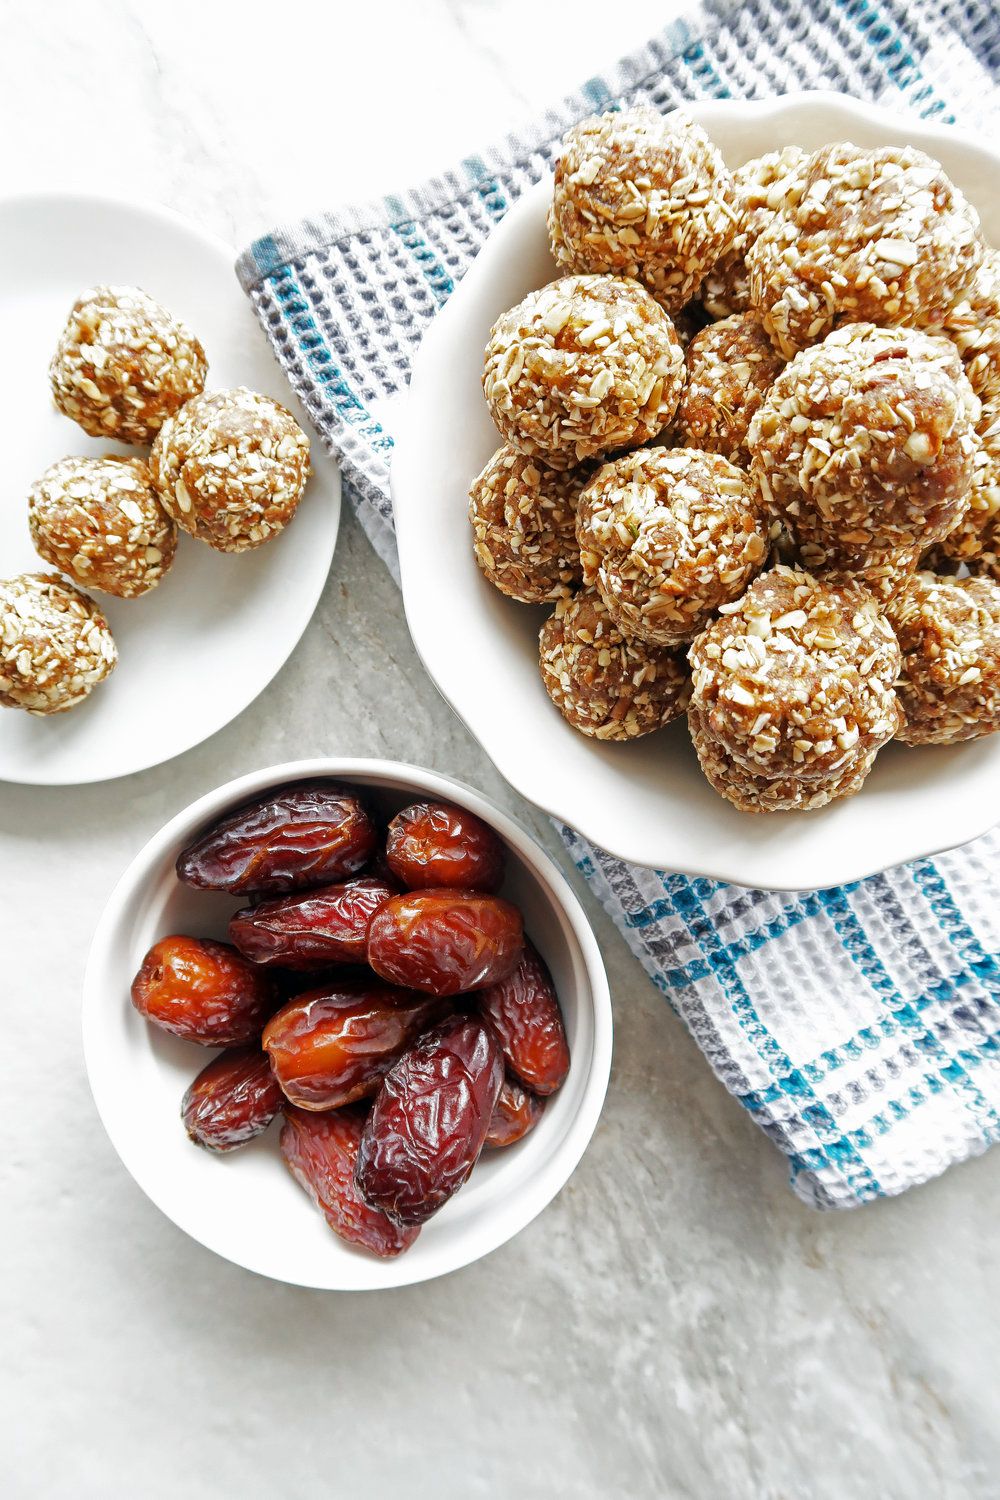 No Bake Chai Spiced Date Energy Balls: A simple, easy, vegan snack or dessert. www.yayforfood.com